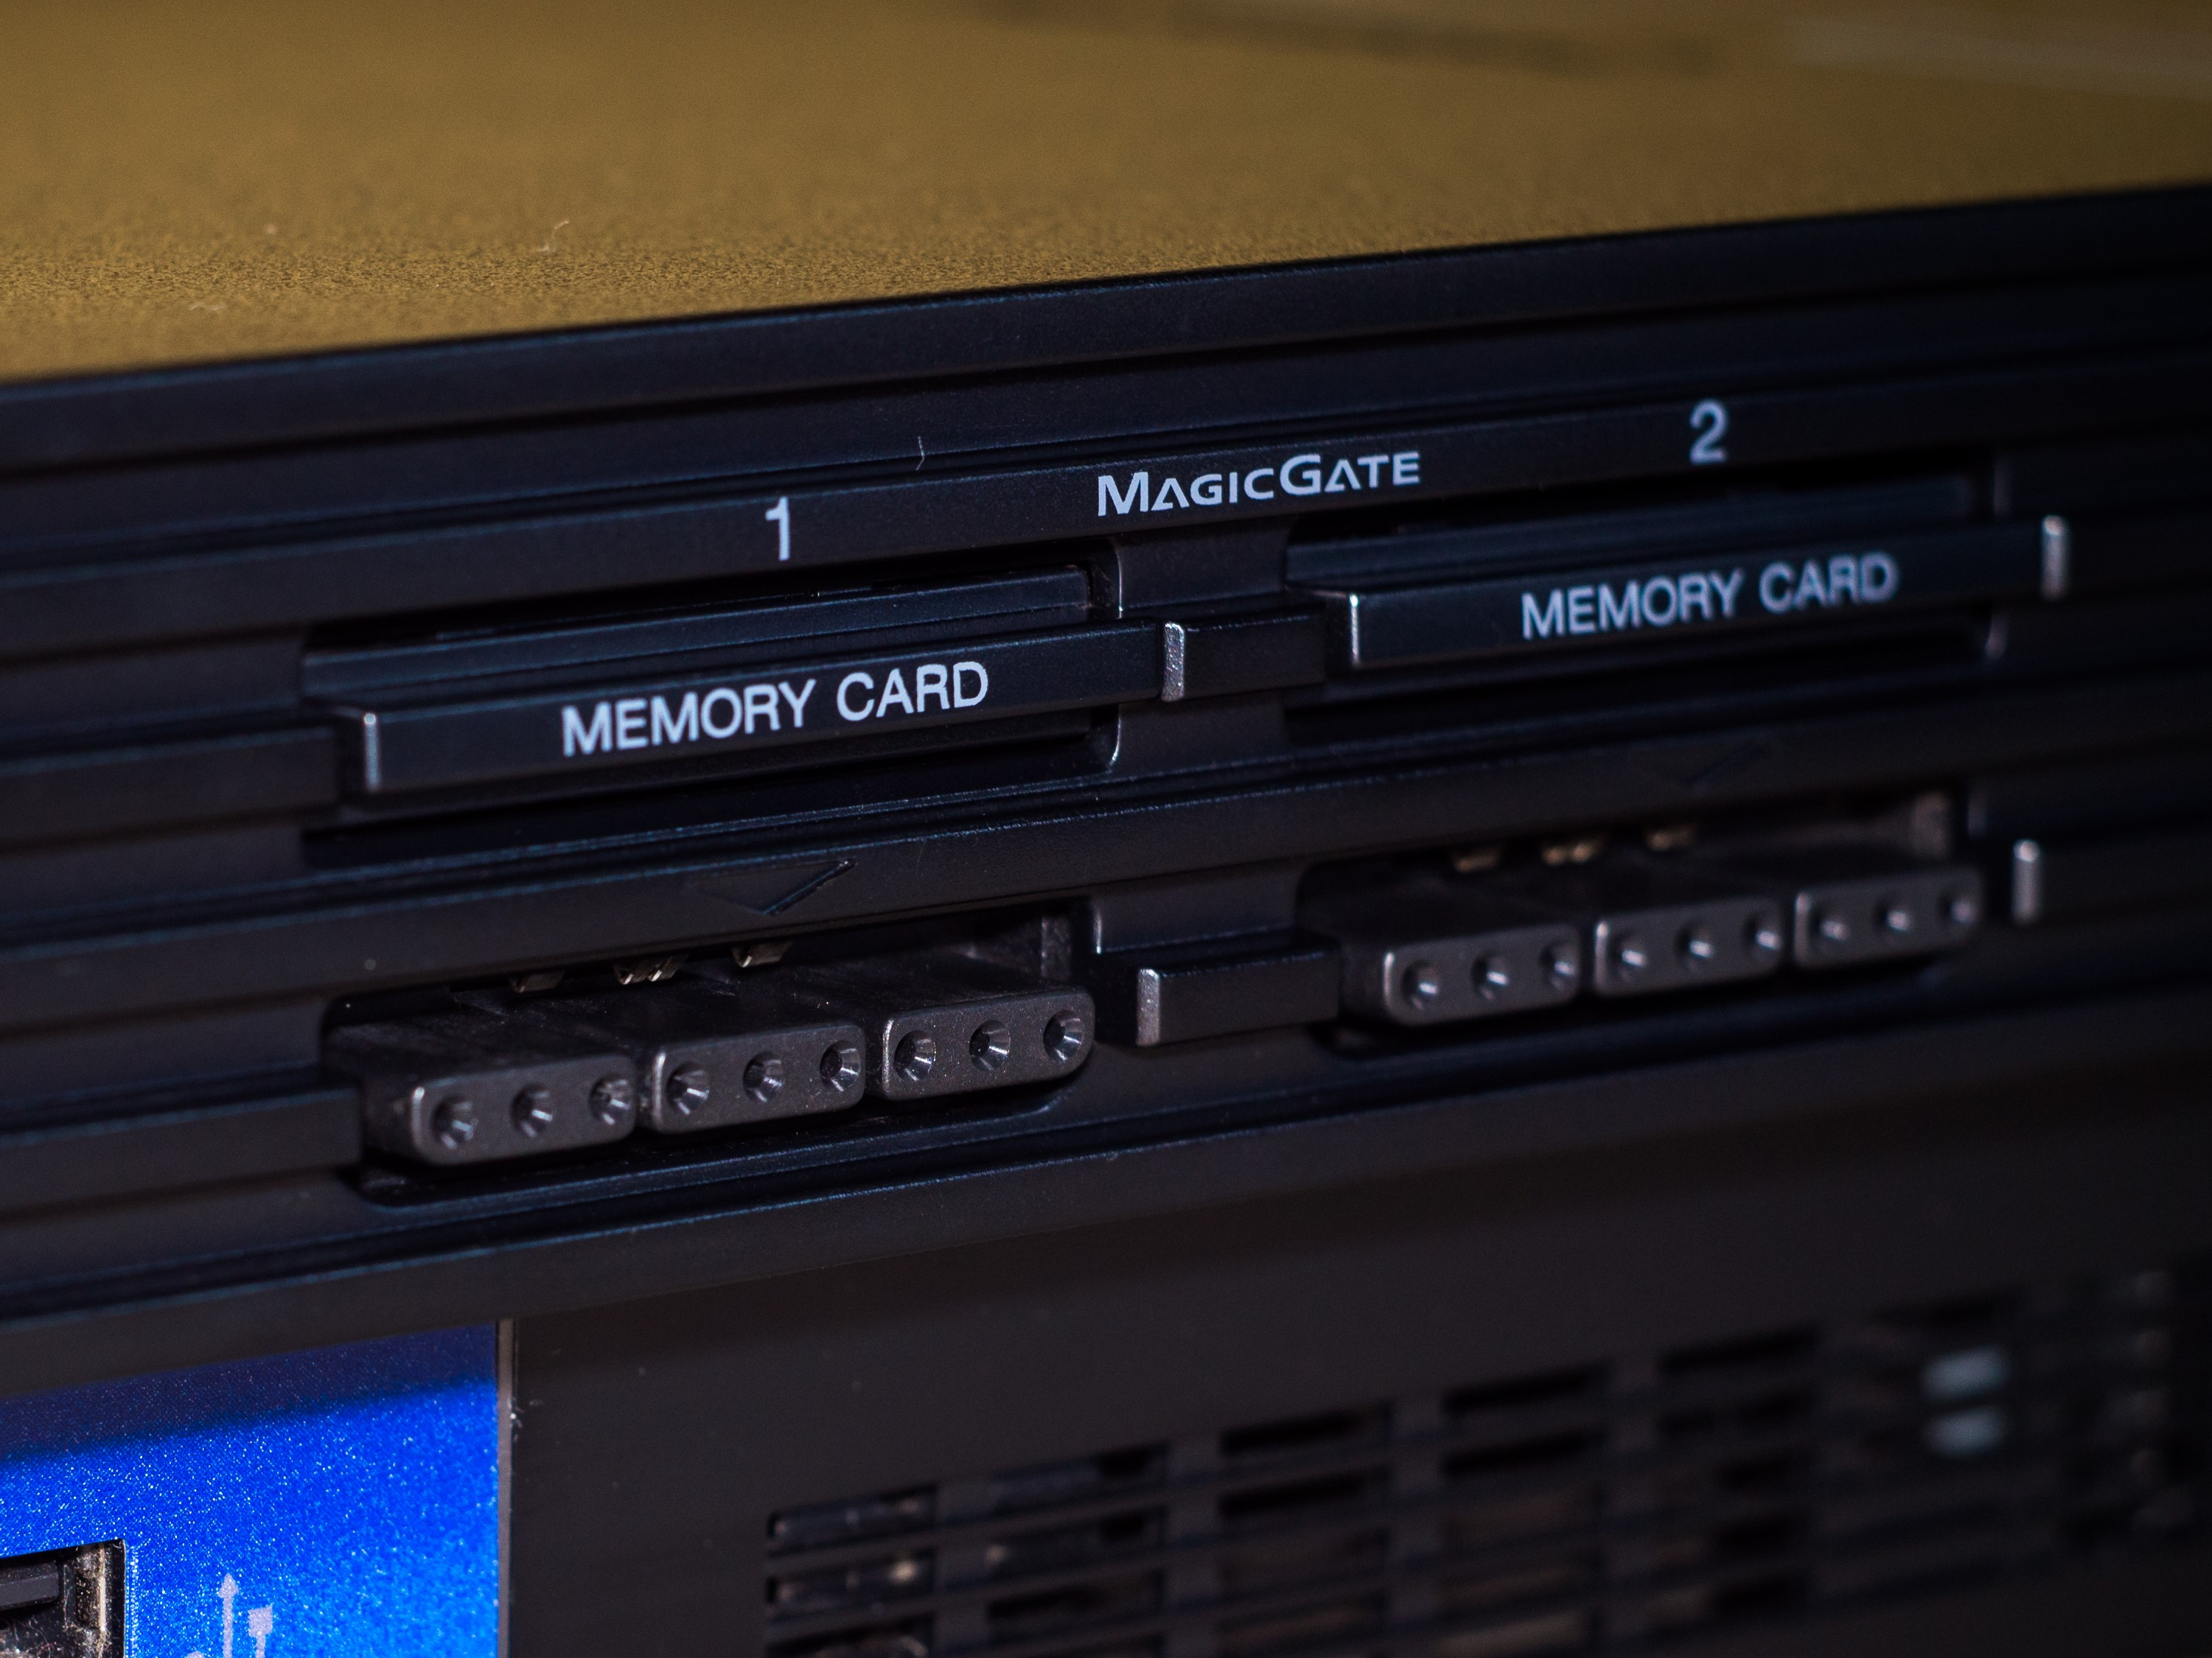 PS2 - Free Memory Card Boot v1 964 Release - A Series of new